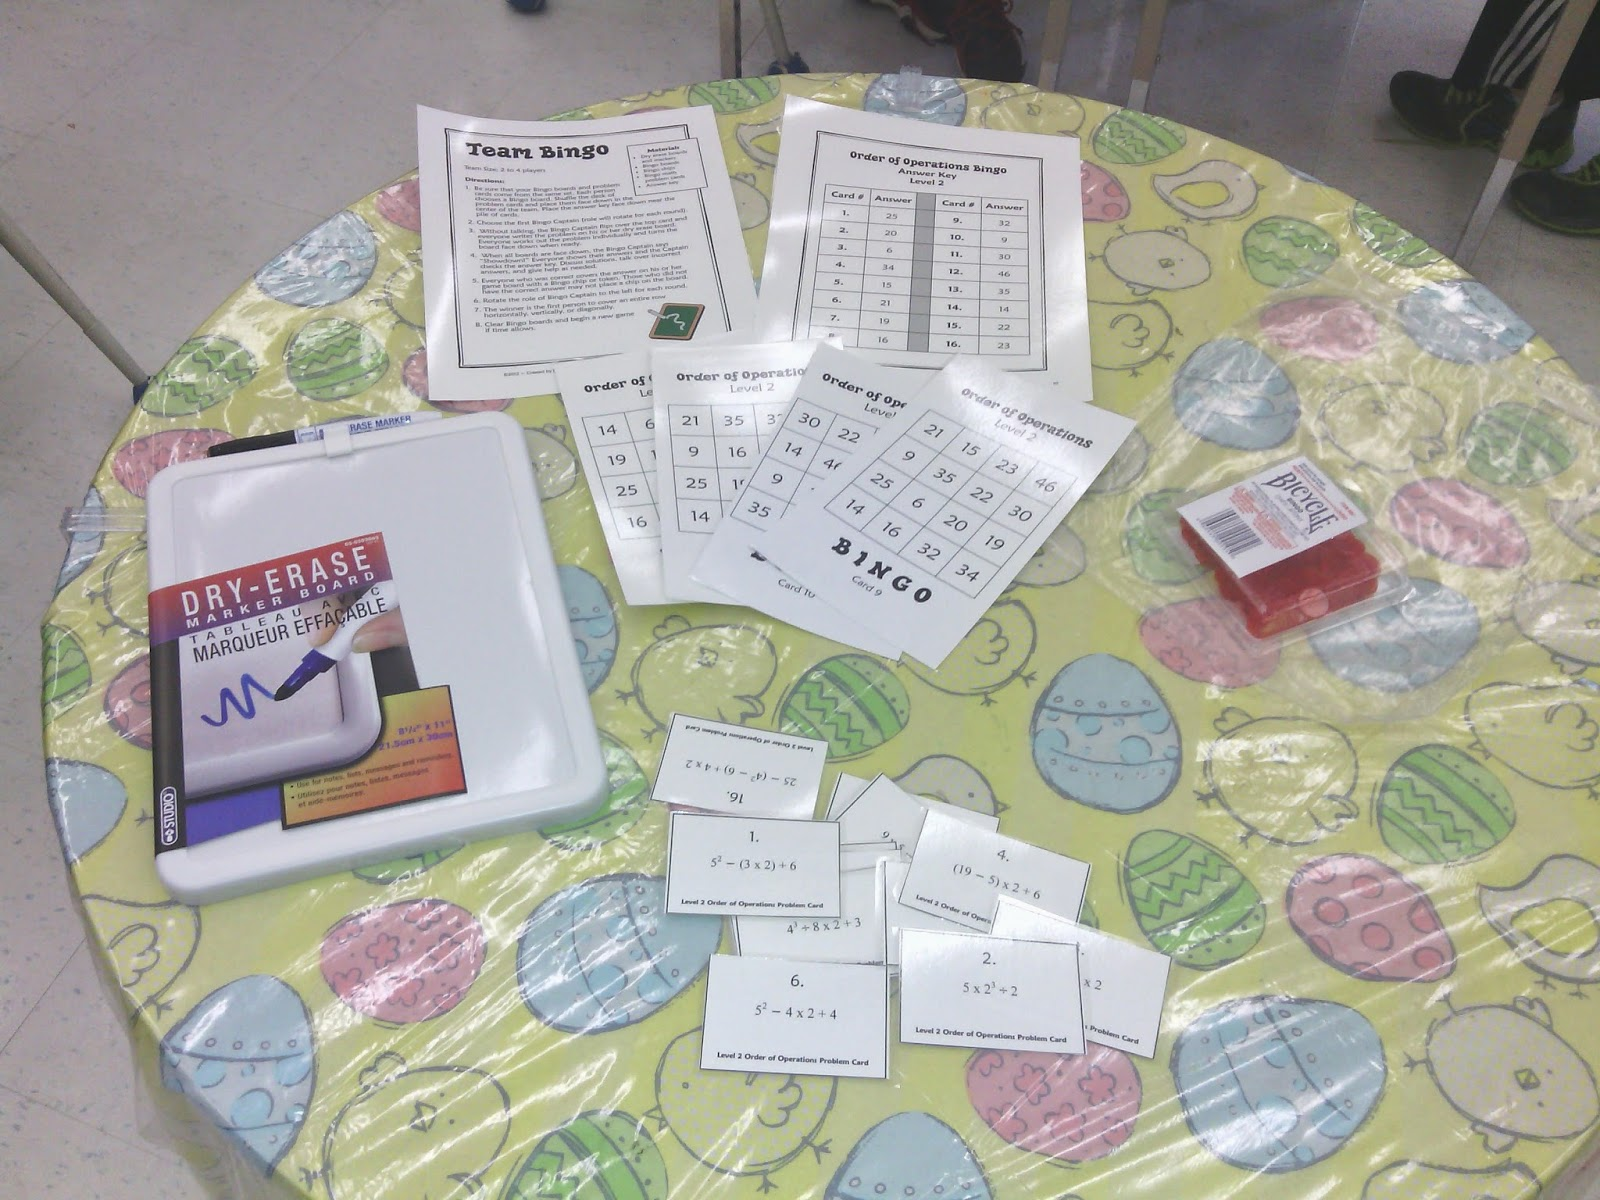 Picture of Order of Operations Bingo Game from http://www.teachingisagift.blogspot.ca